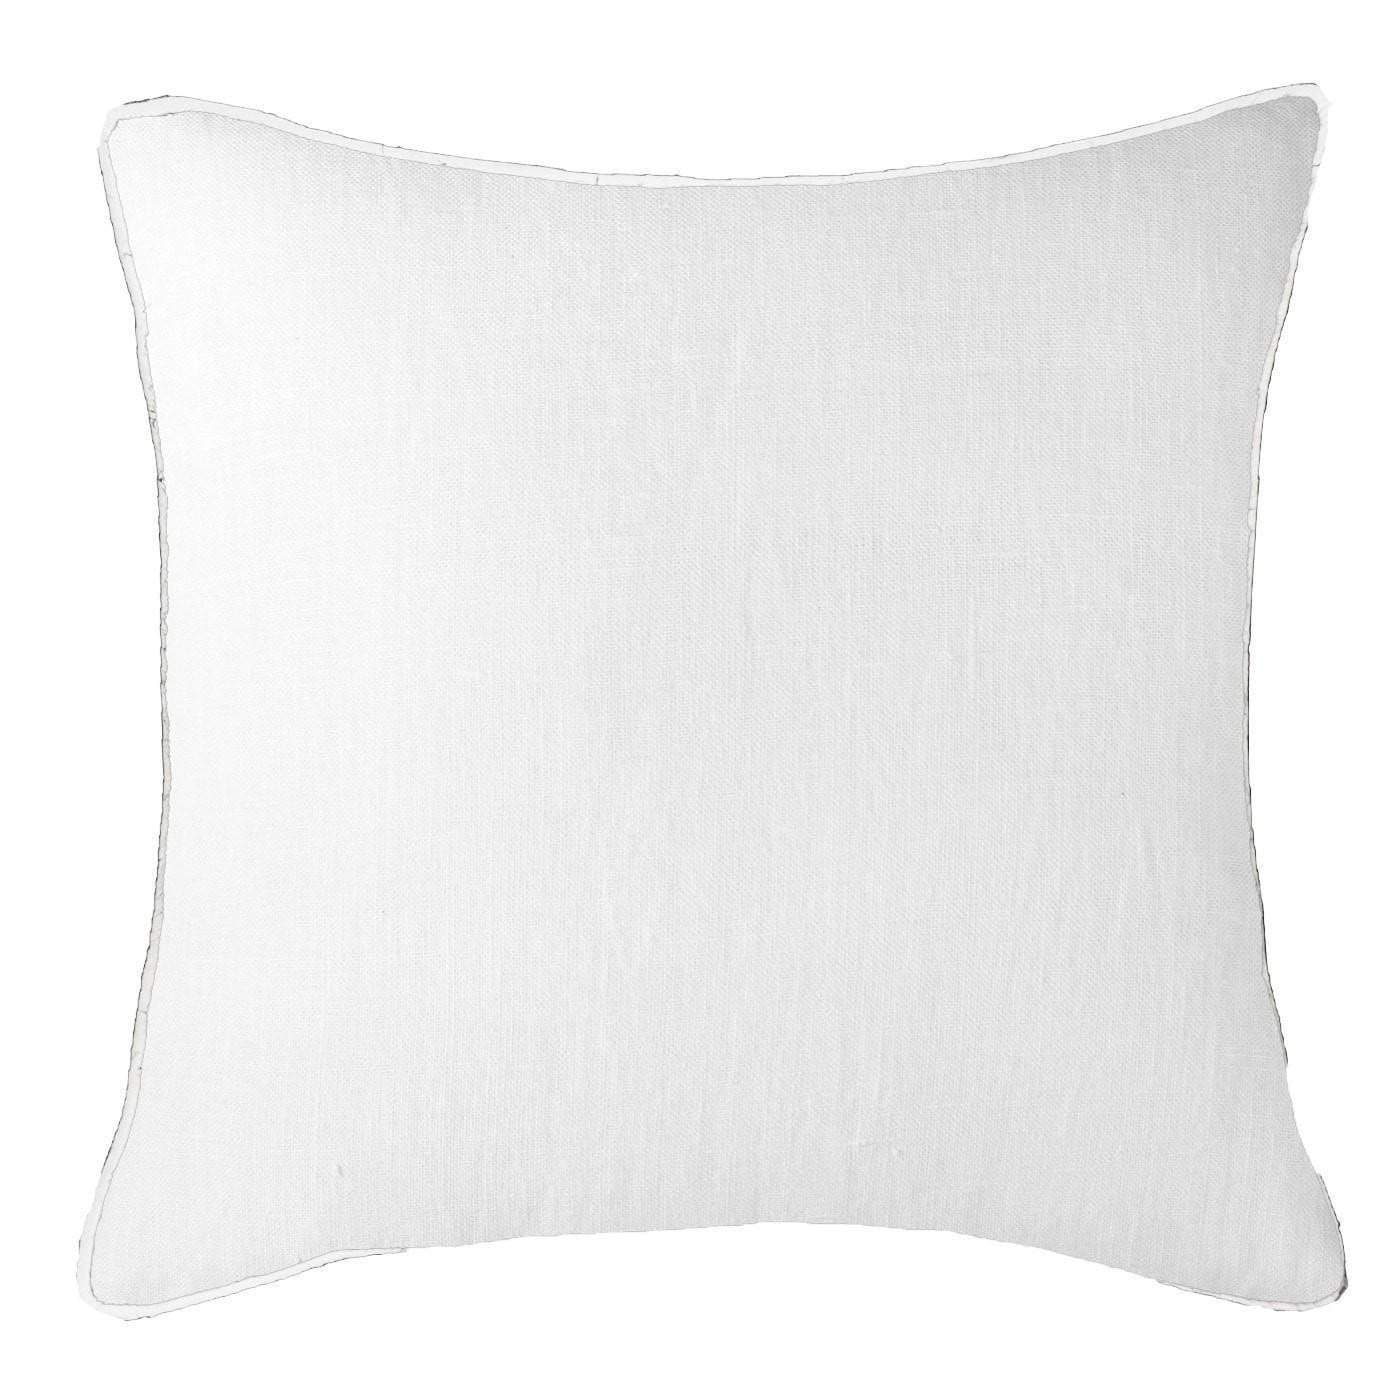 Bandhini Homewear Design Lounge Cushion Earth White / Surf Tribe / 22 x 22 Piped Linen White Lounge Cushion 55 x 55 cm